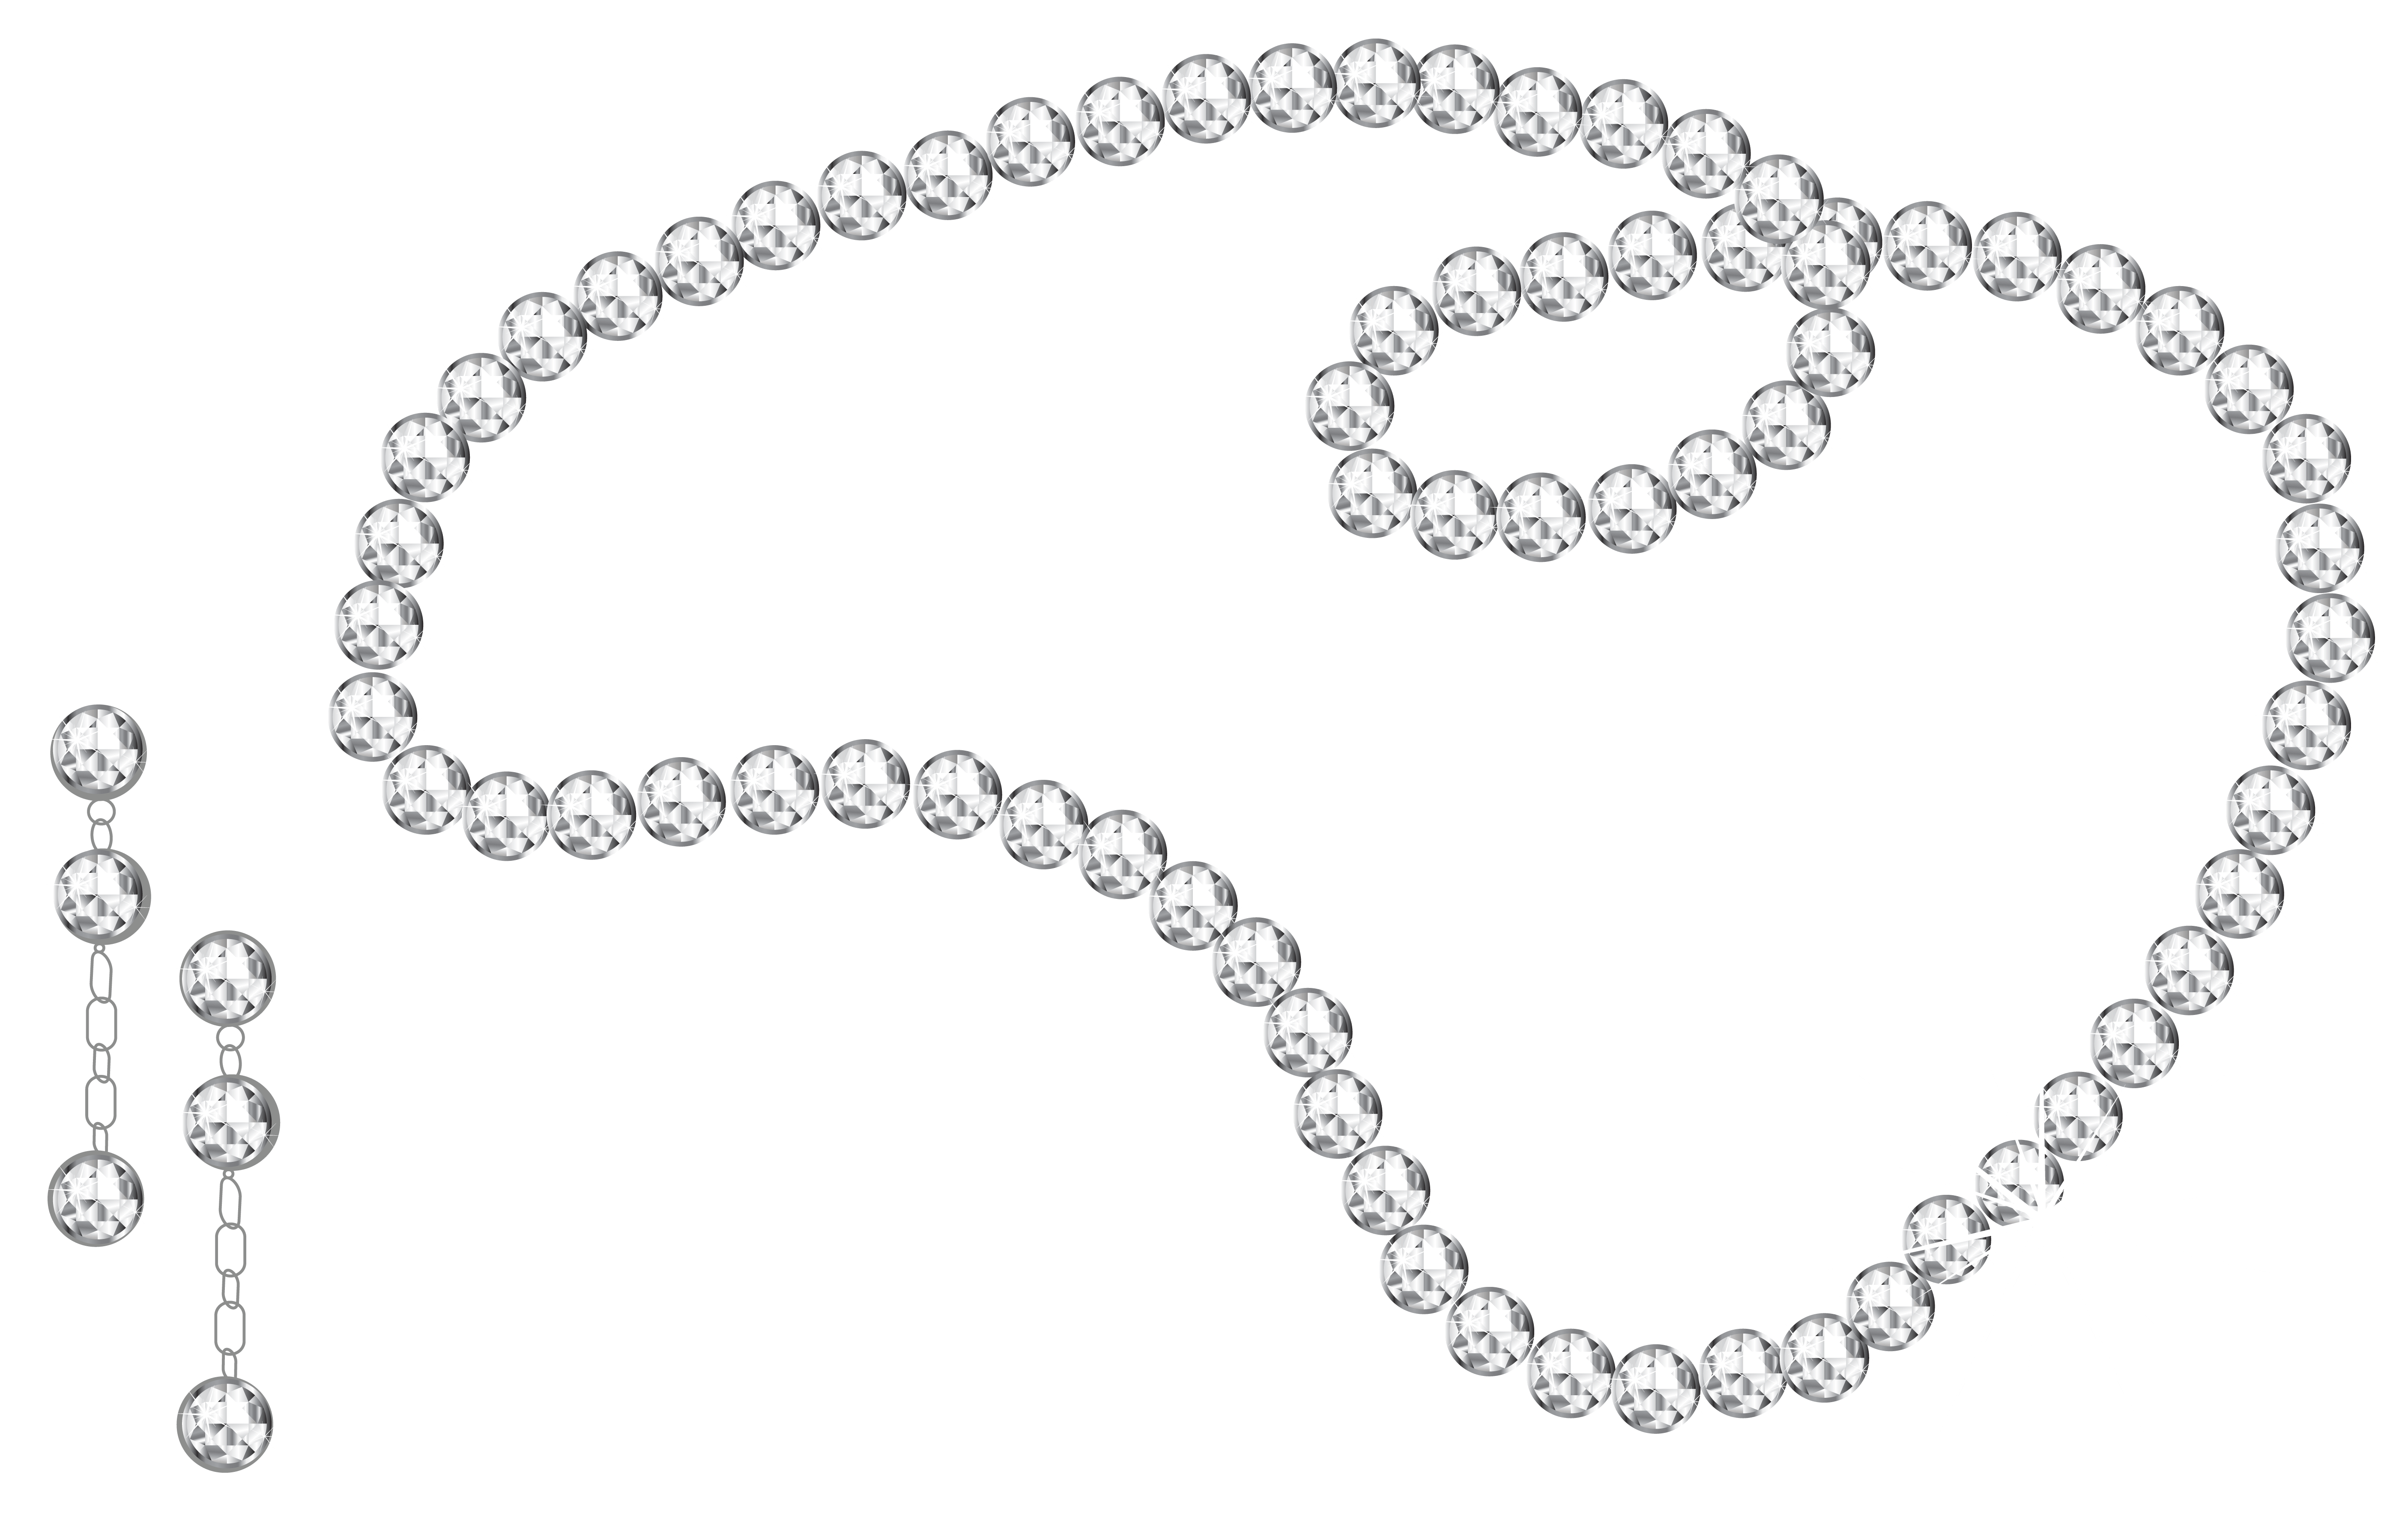 collection of strand. Necklace clipart small black pearl